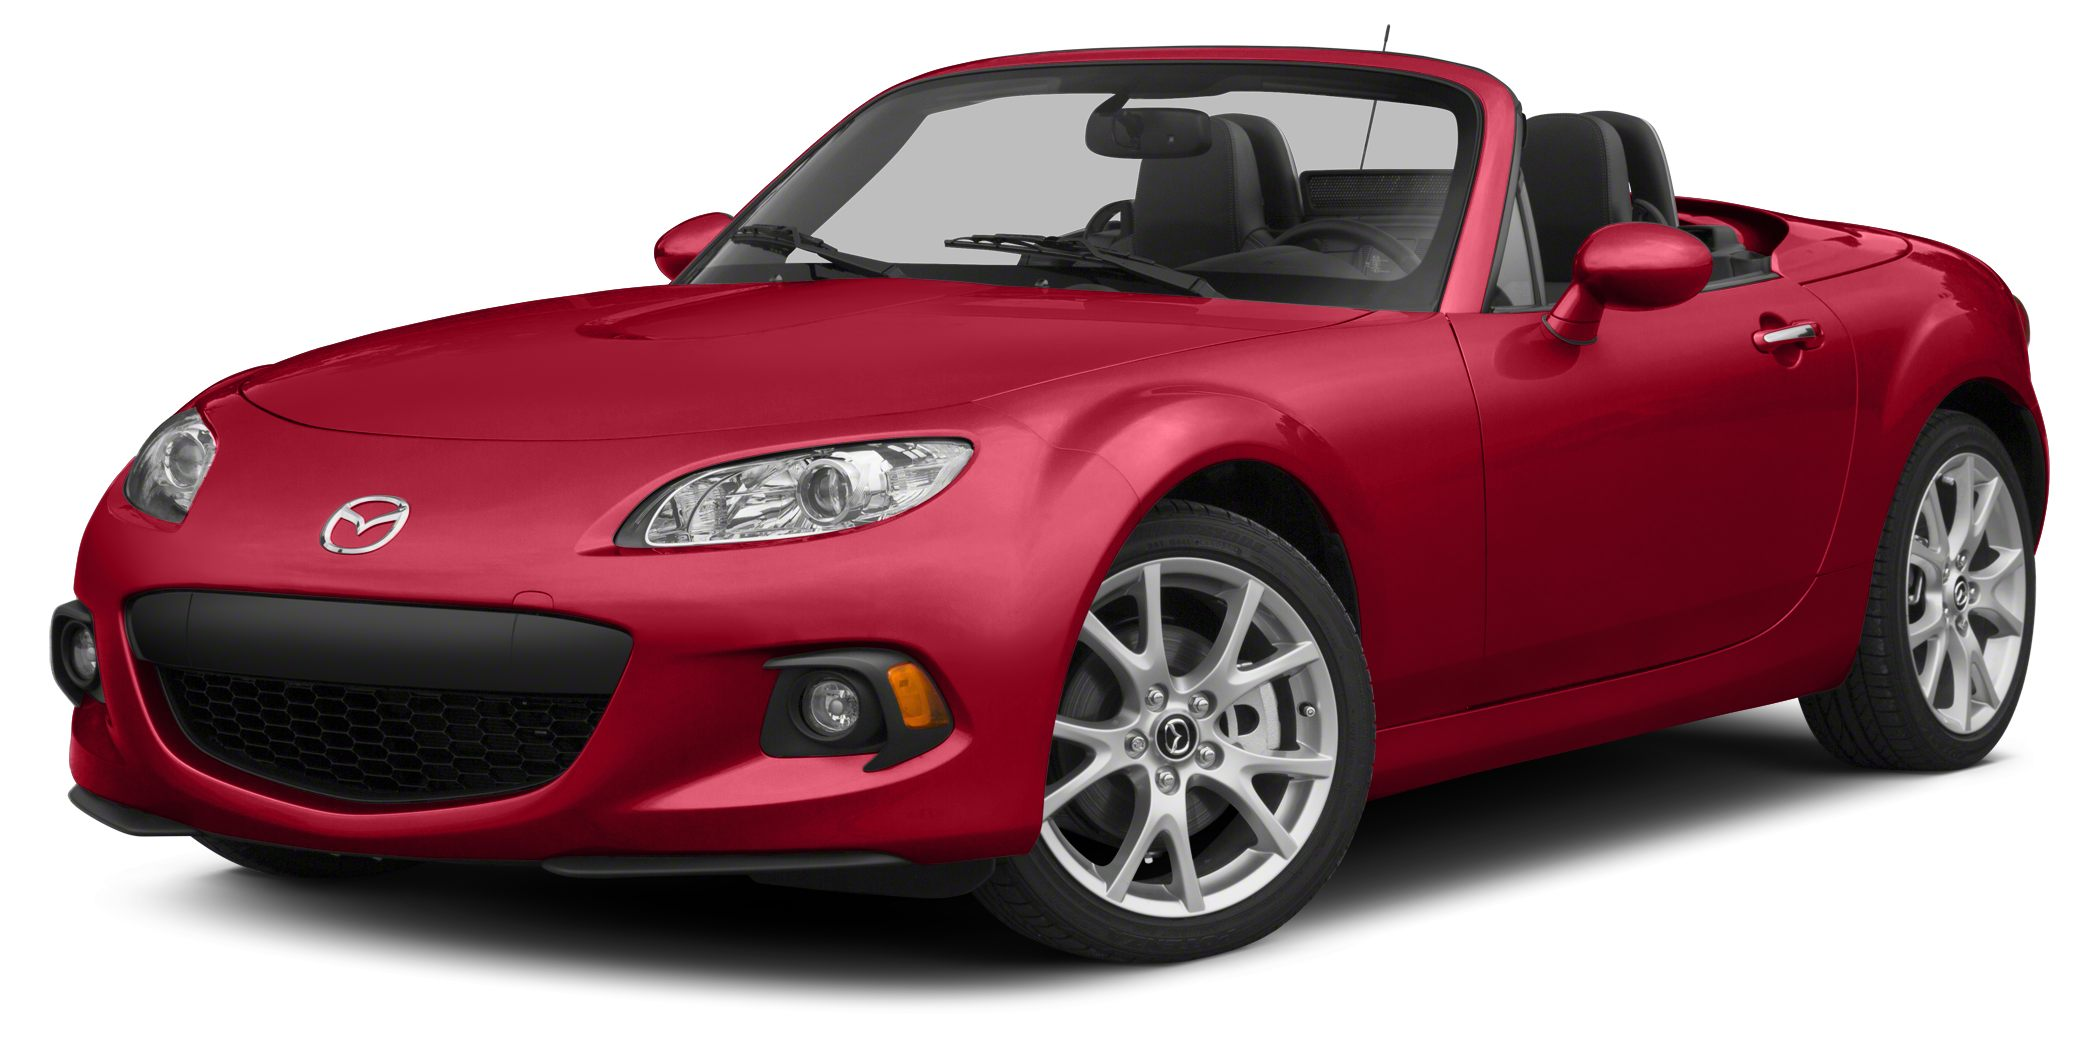 2015 Mazda Miata Grand Touring At Advantage Chrysler you know you are getting a safe and dependabl